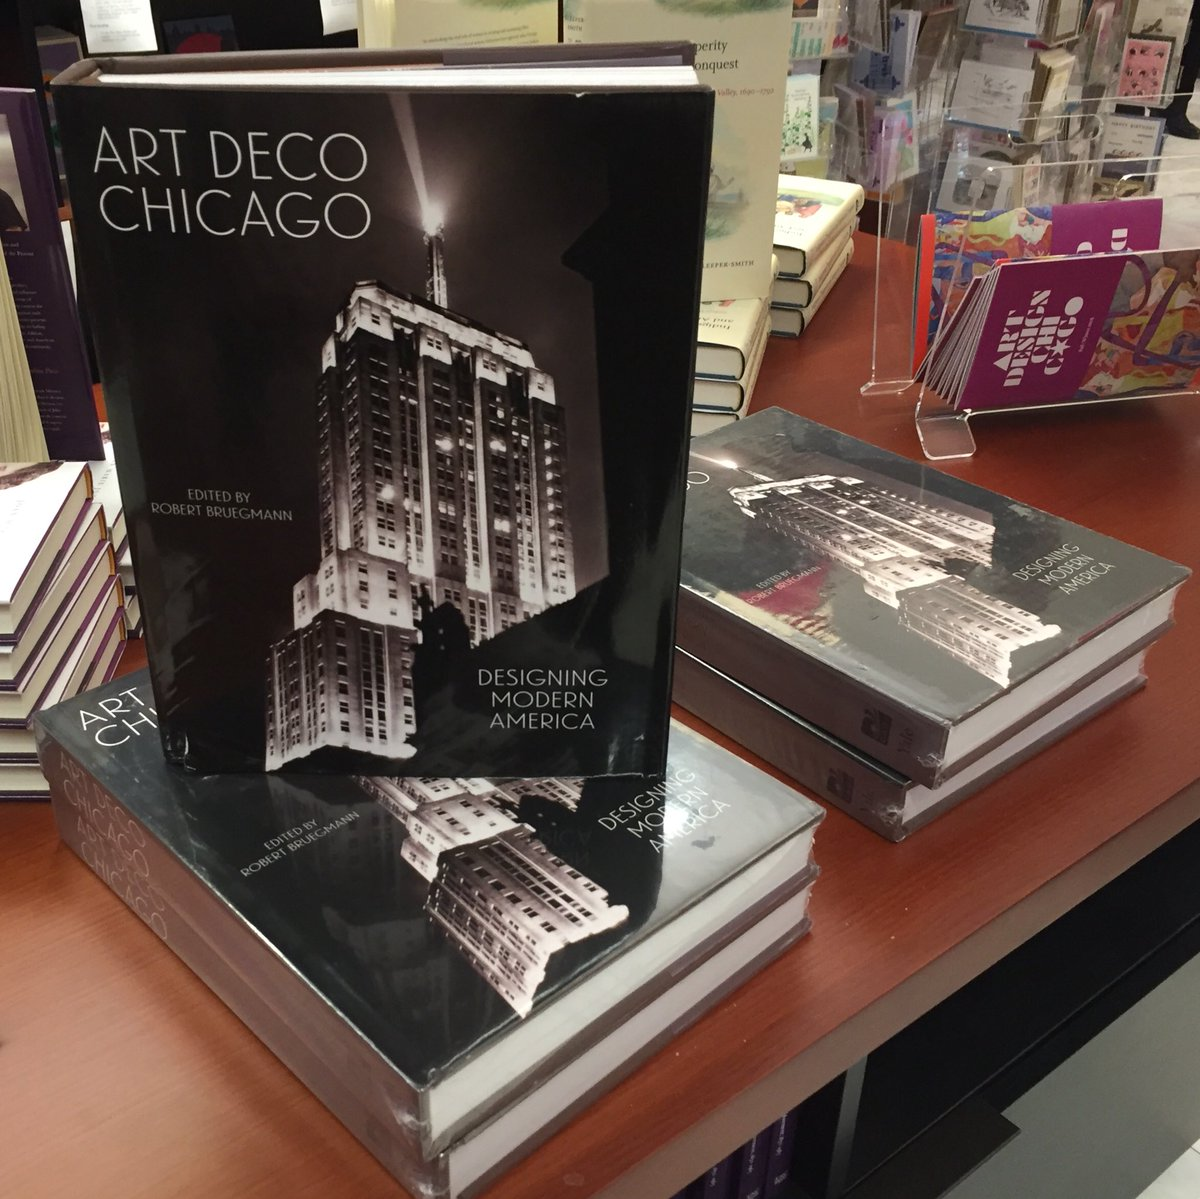 First time seeing this on sale @NewberryLibrary for the launch event tonight! Proud to be part of this project since 2013! @chicagodeco